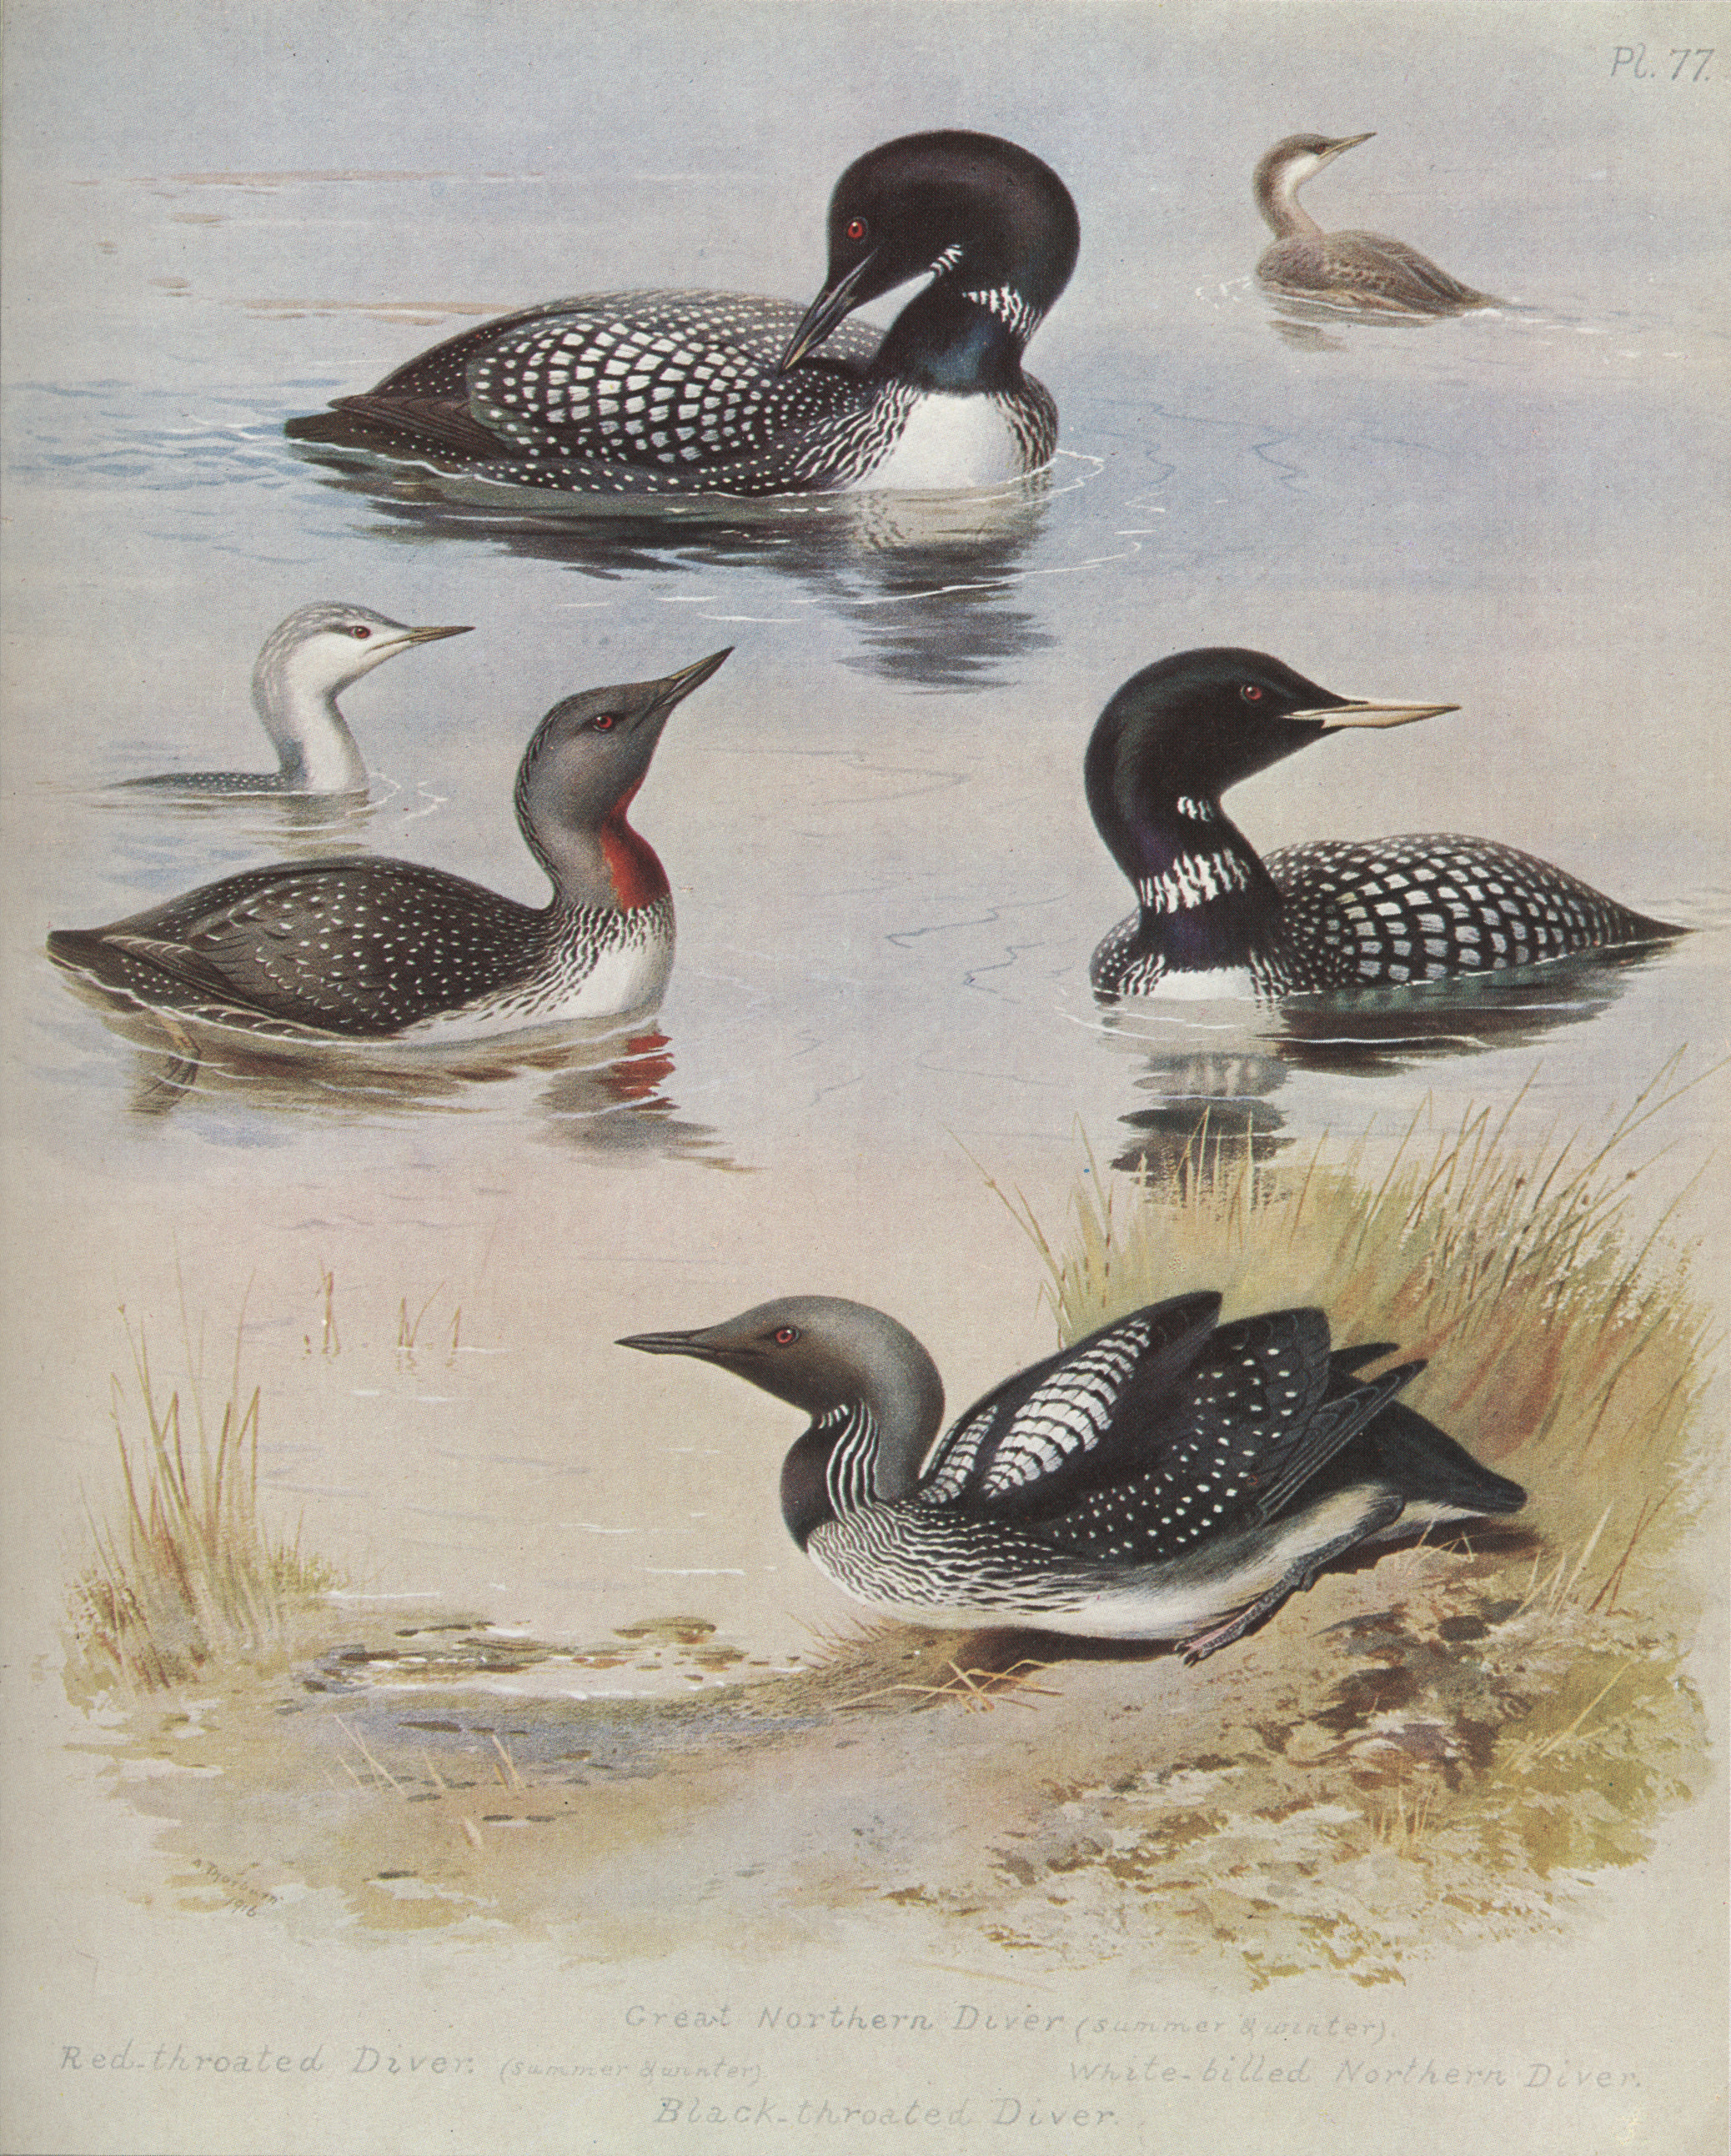 http://upload.wikimedia.org/wikipedia/commons/5/56/Archibald_Thorburn_Plate_77.jpg